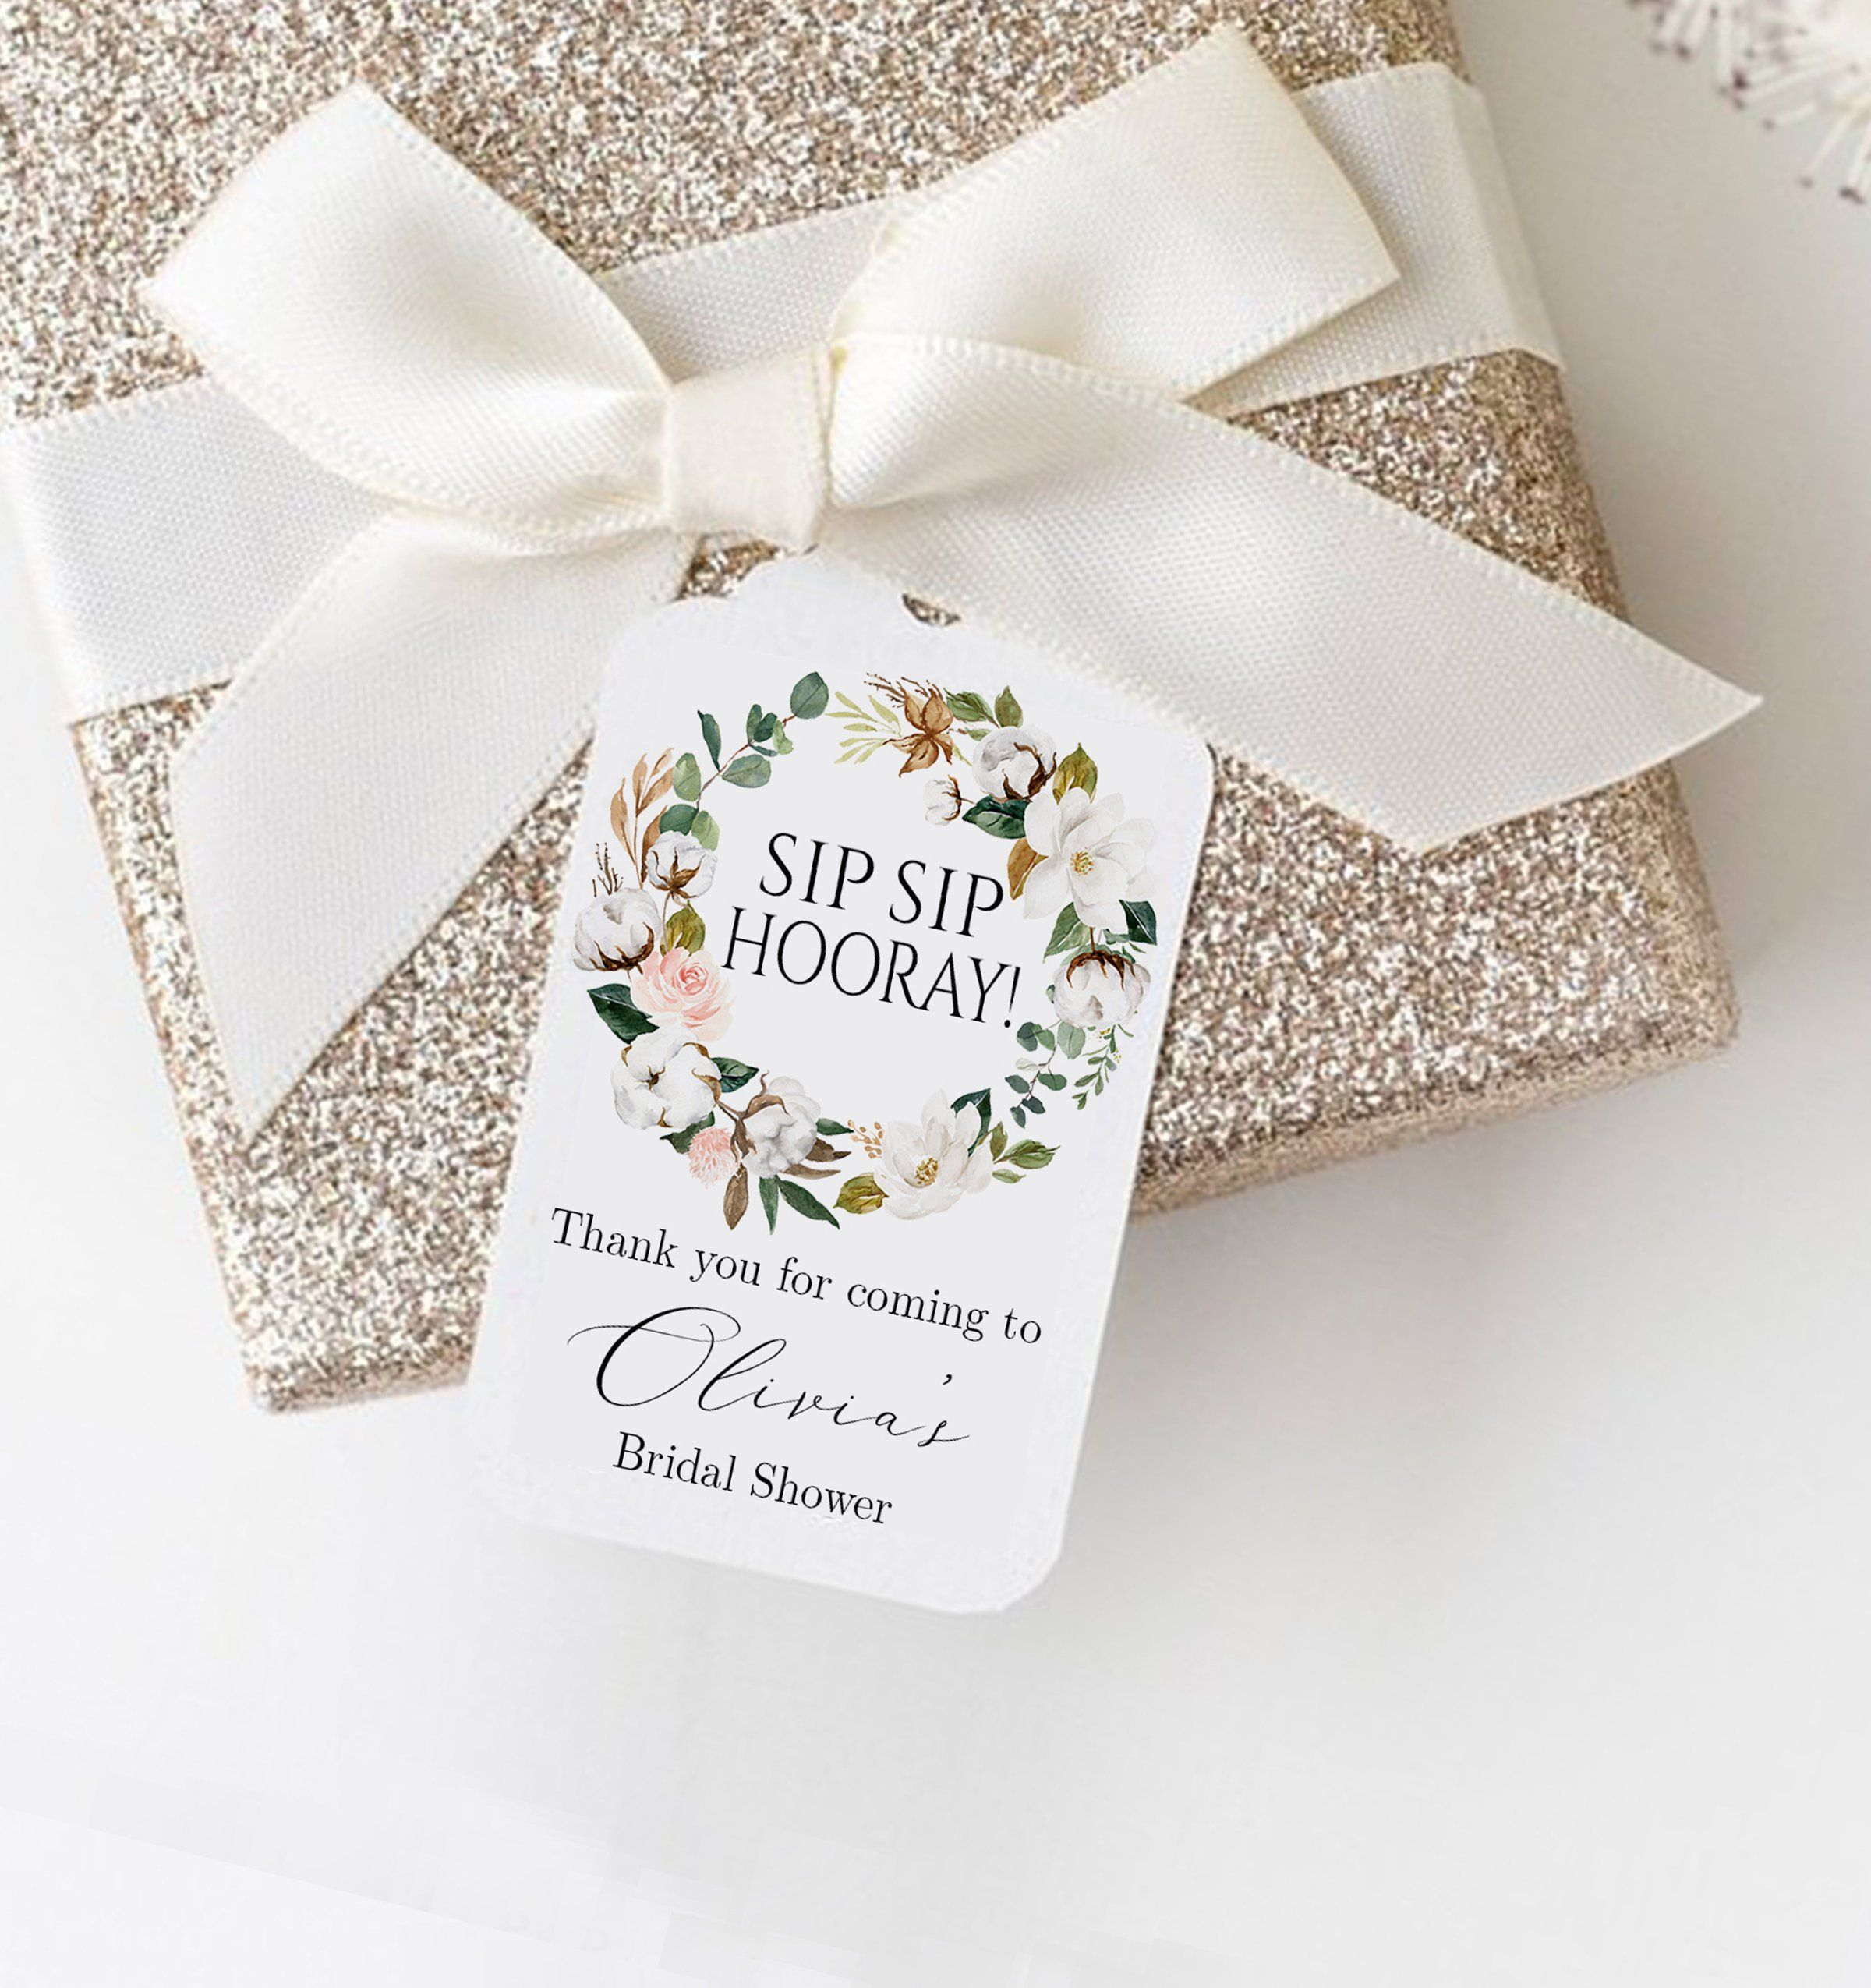 Sip Sip Hooray Bridal Shower Thank You Tags Wine Bottle Favor Mini